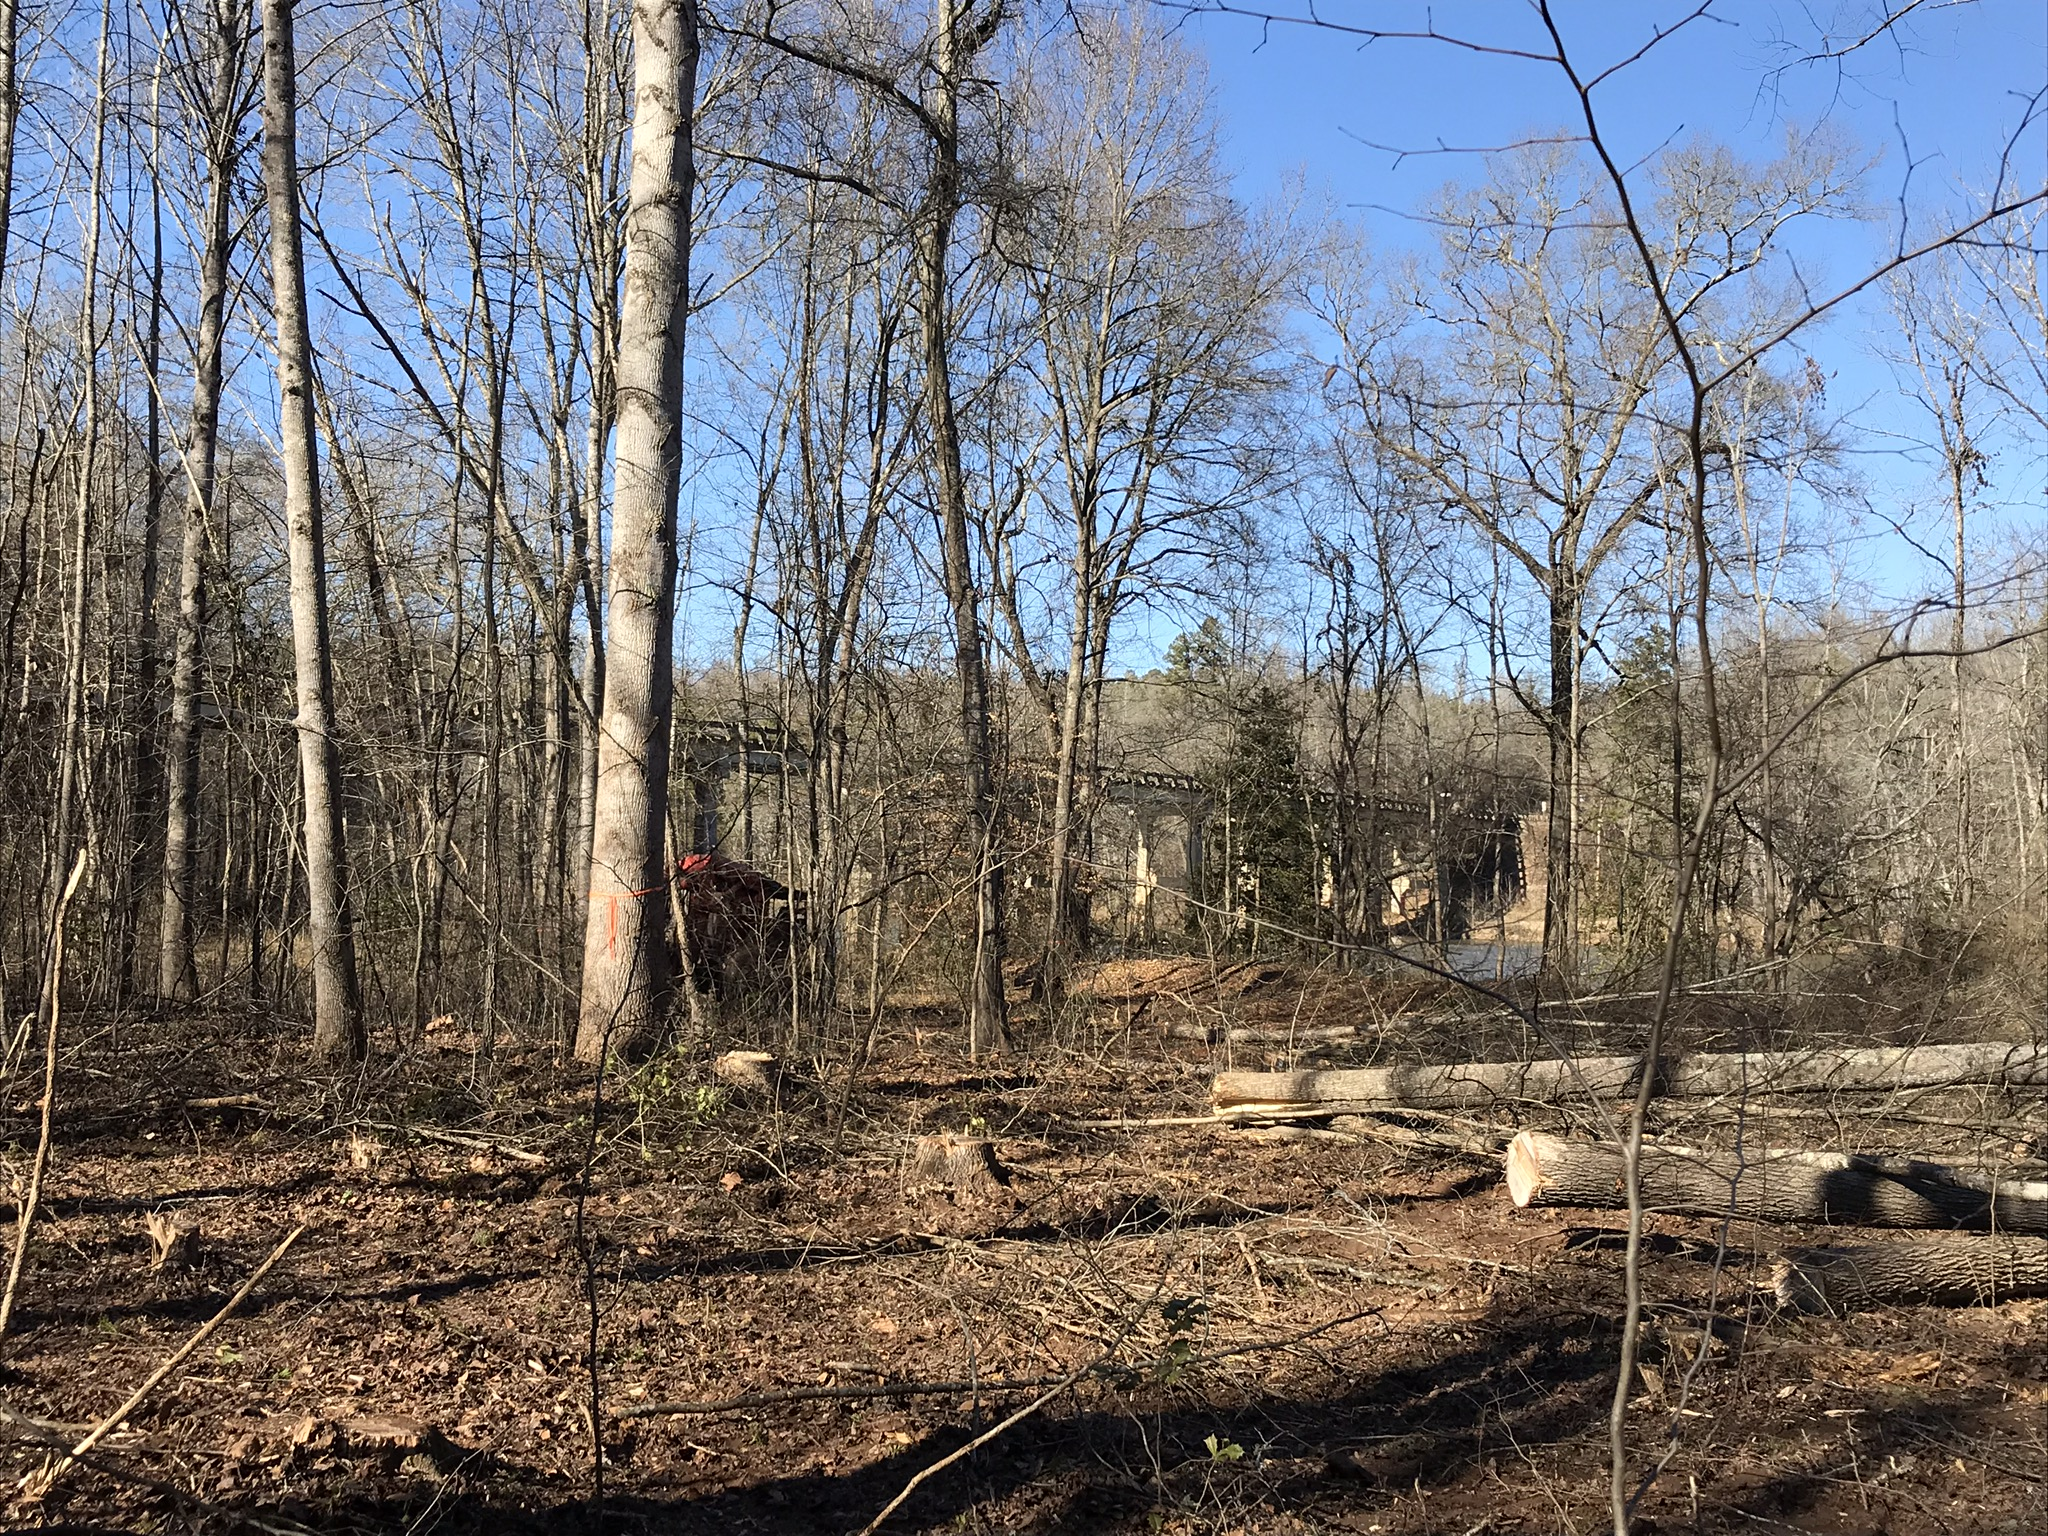 Greenway begins work on new canoe launch